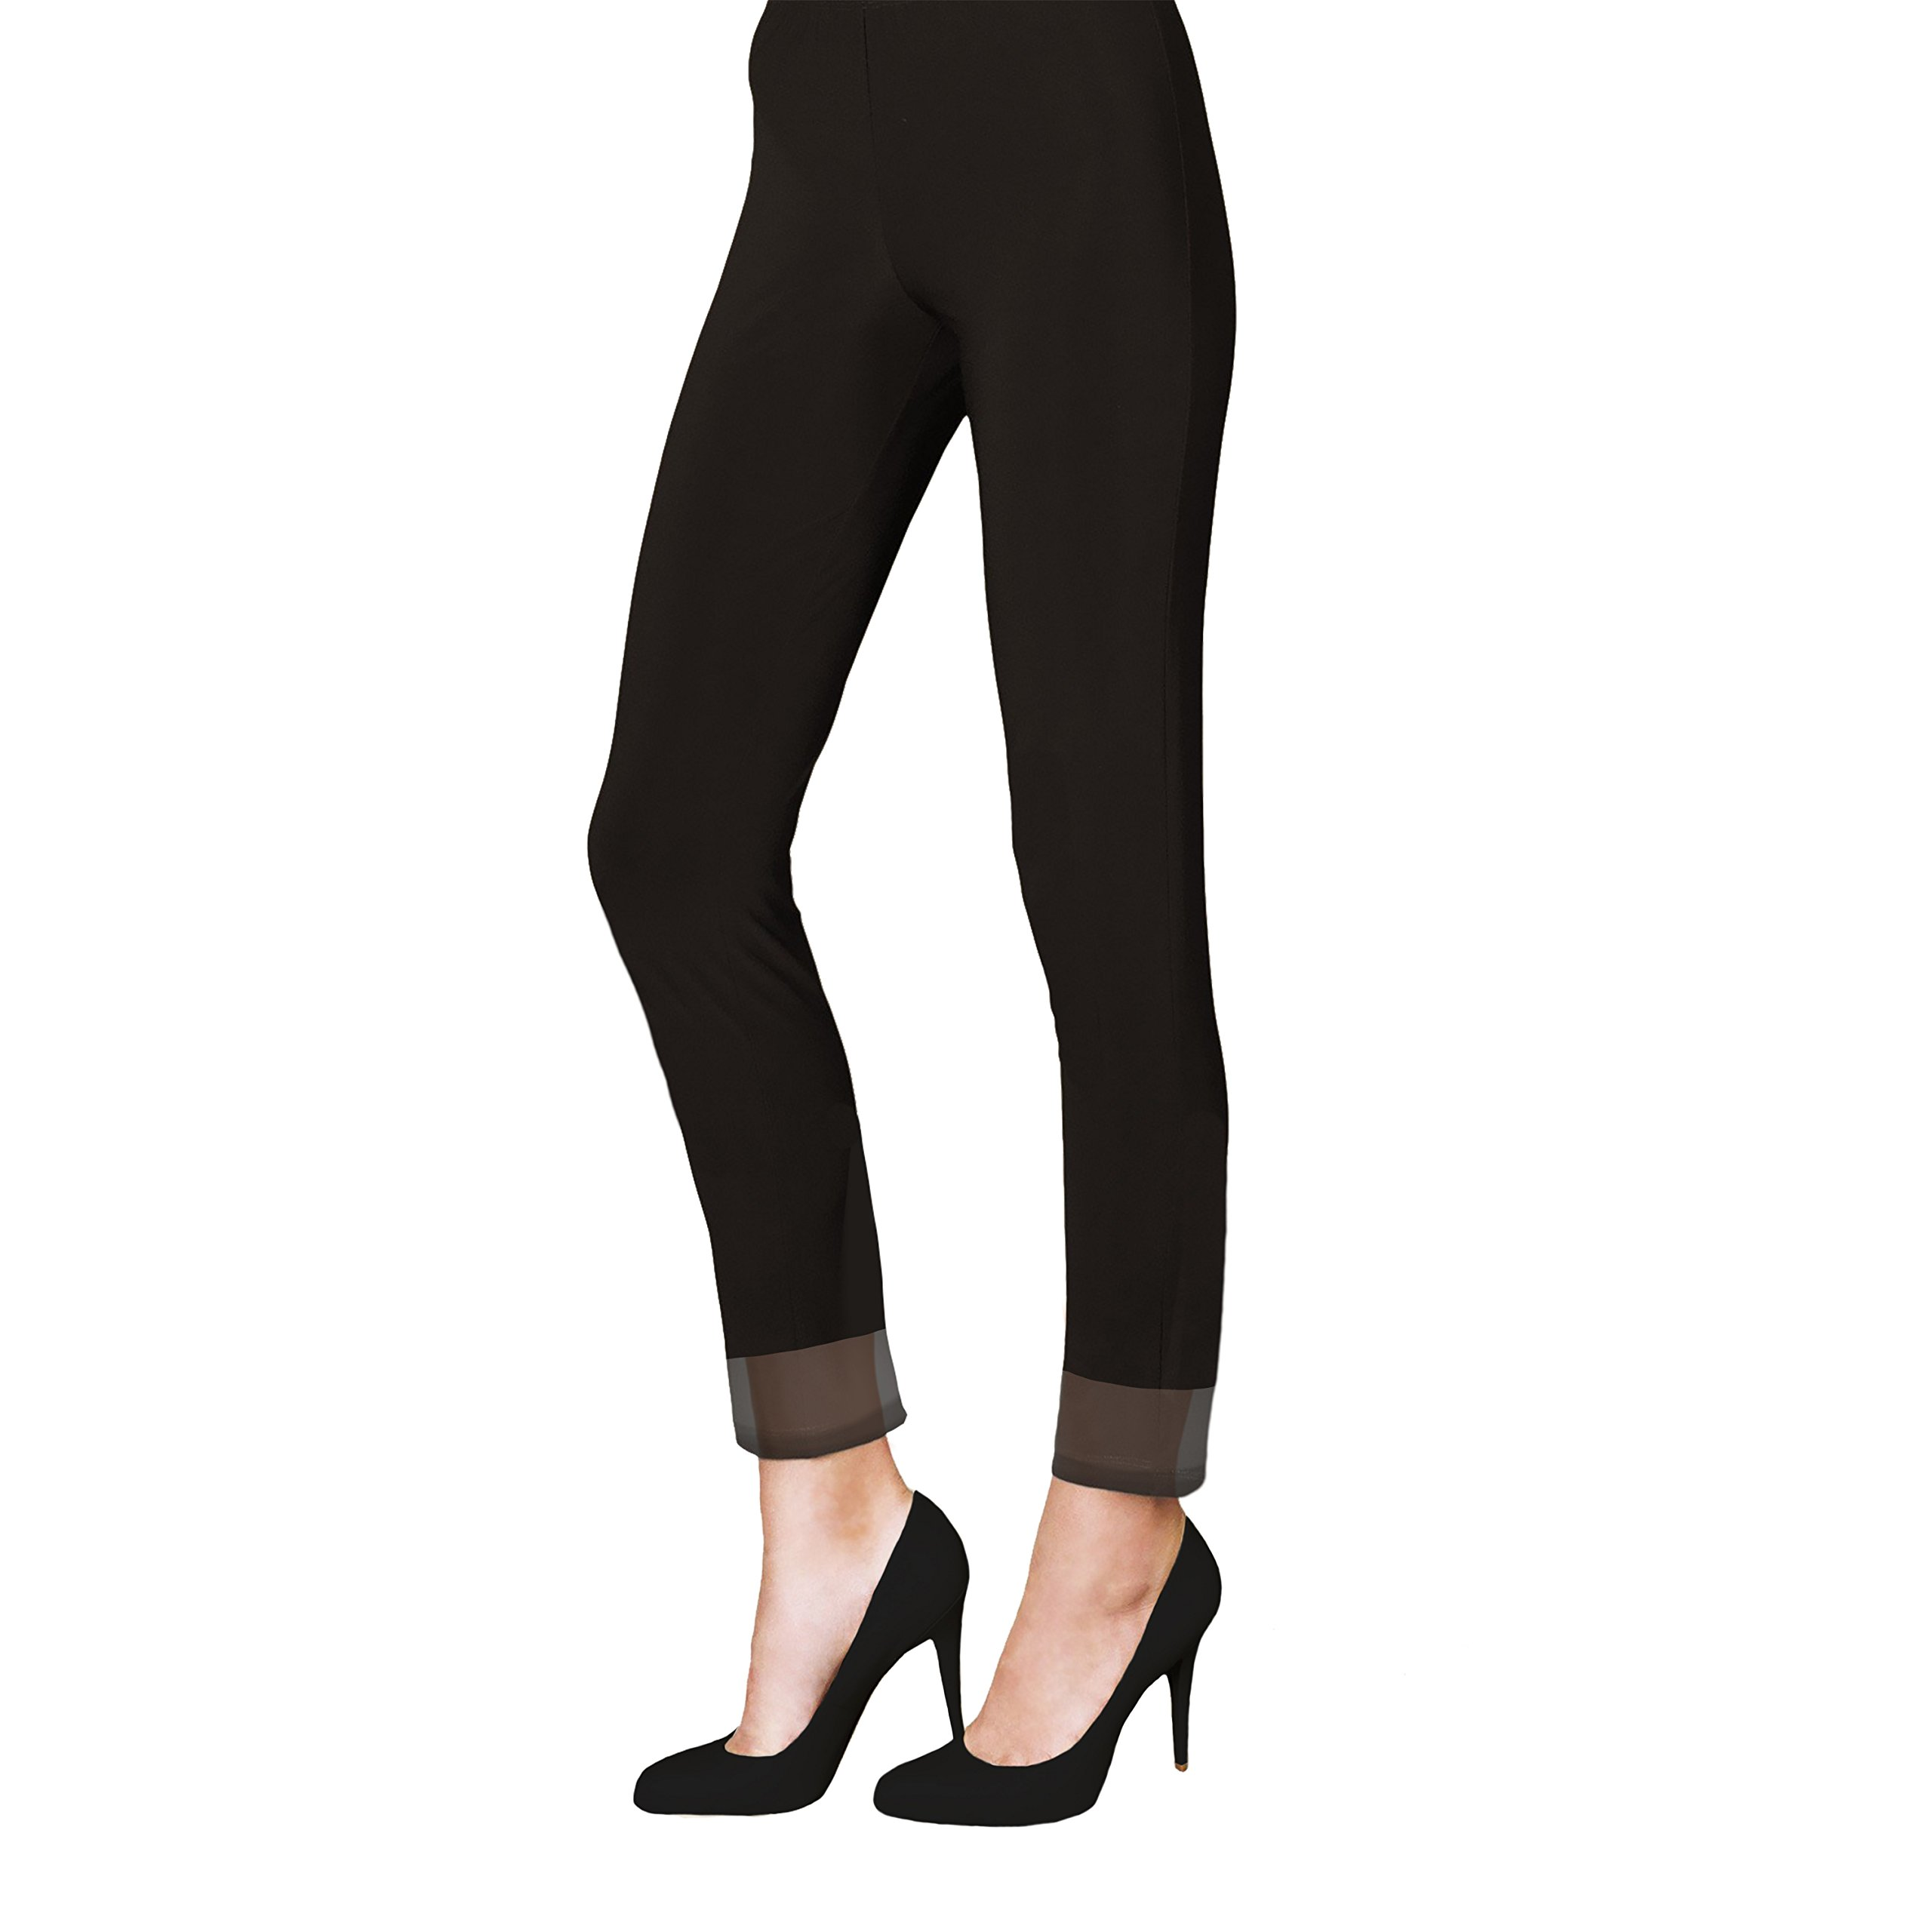 IC Collection Legging With Mesh Border In Black - 5231P (Large) by IC Collection